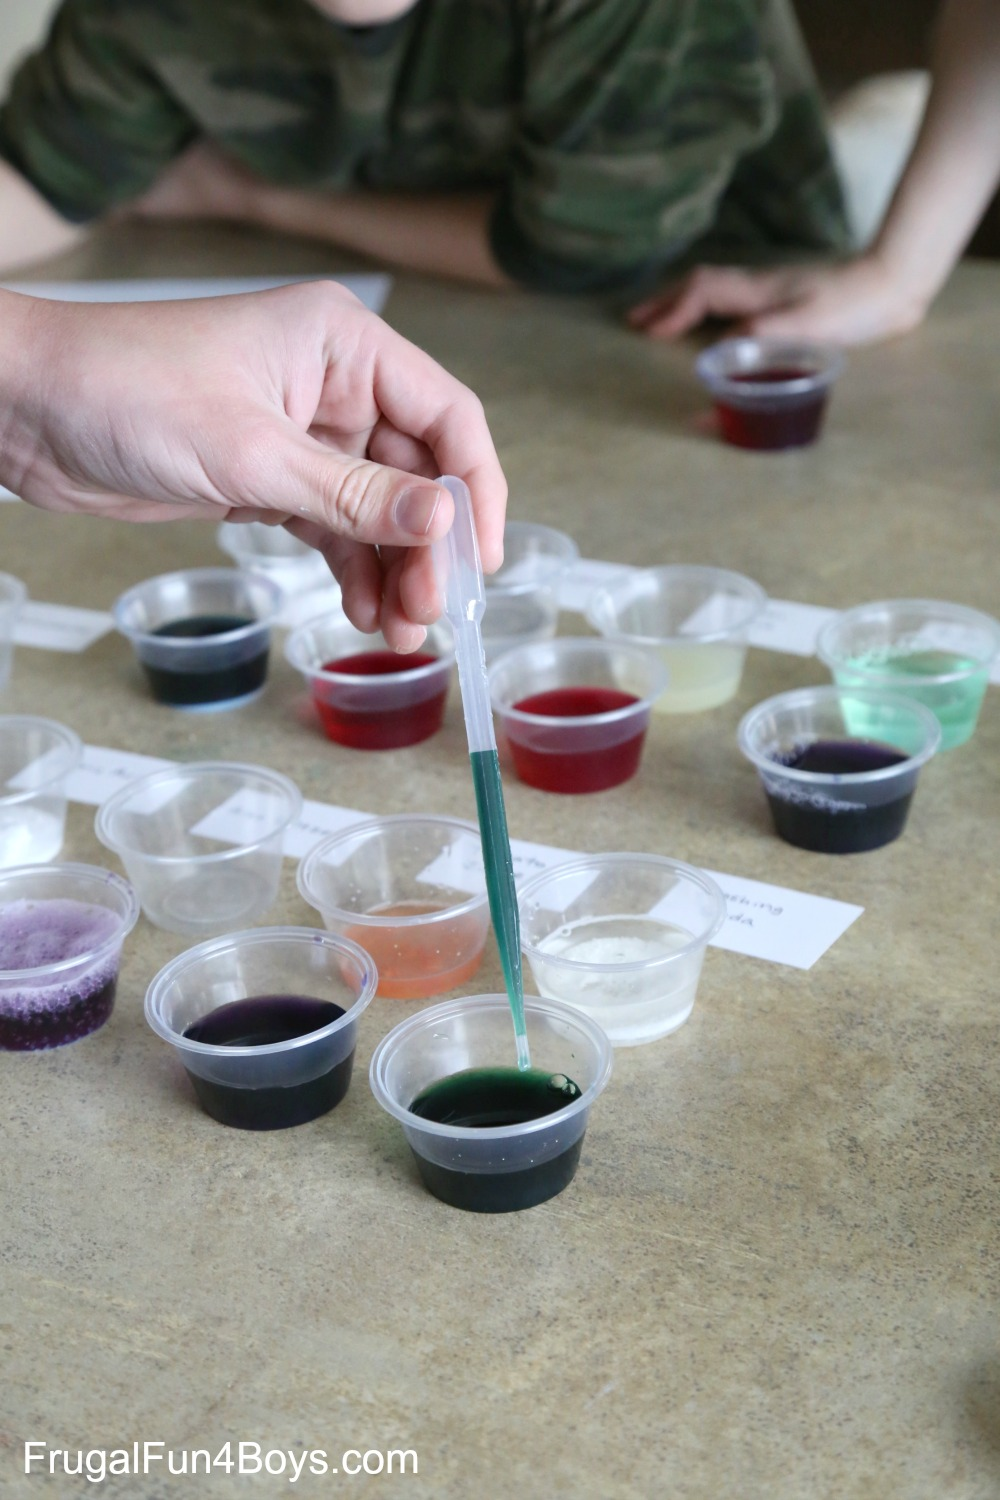 Kitchen Chemistry: Red Cabbage Acid/Base Indicator